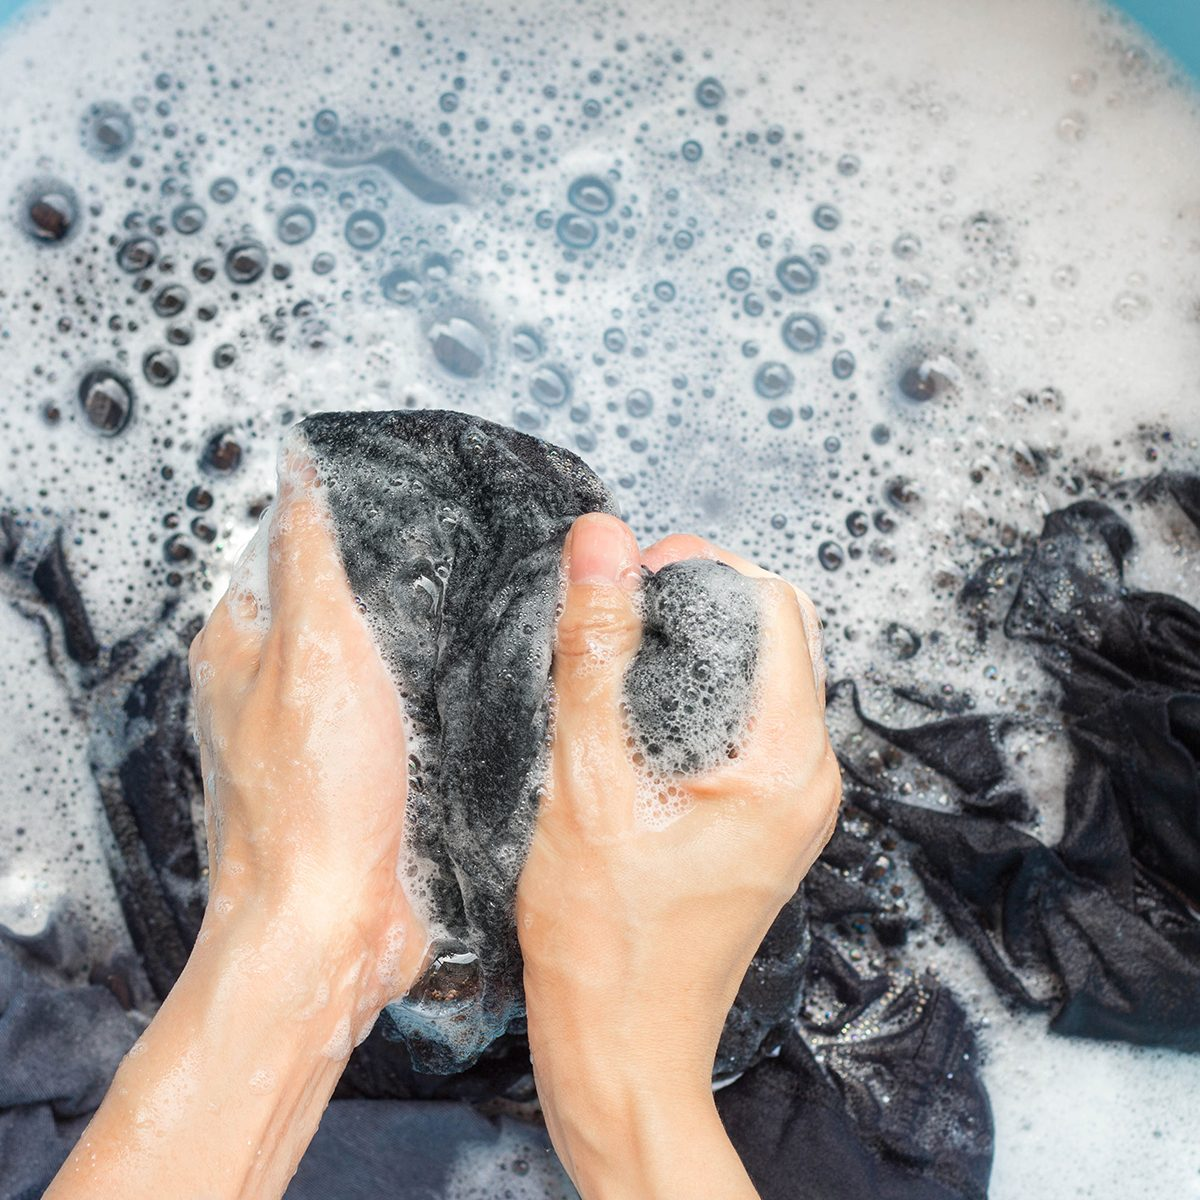 Cropped Hands Of Person Washing Laundry In Bucket